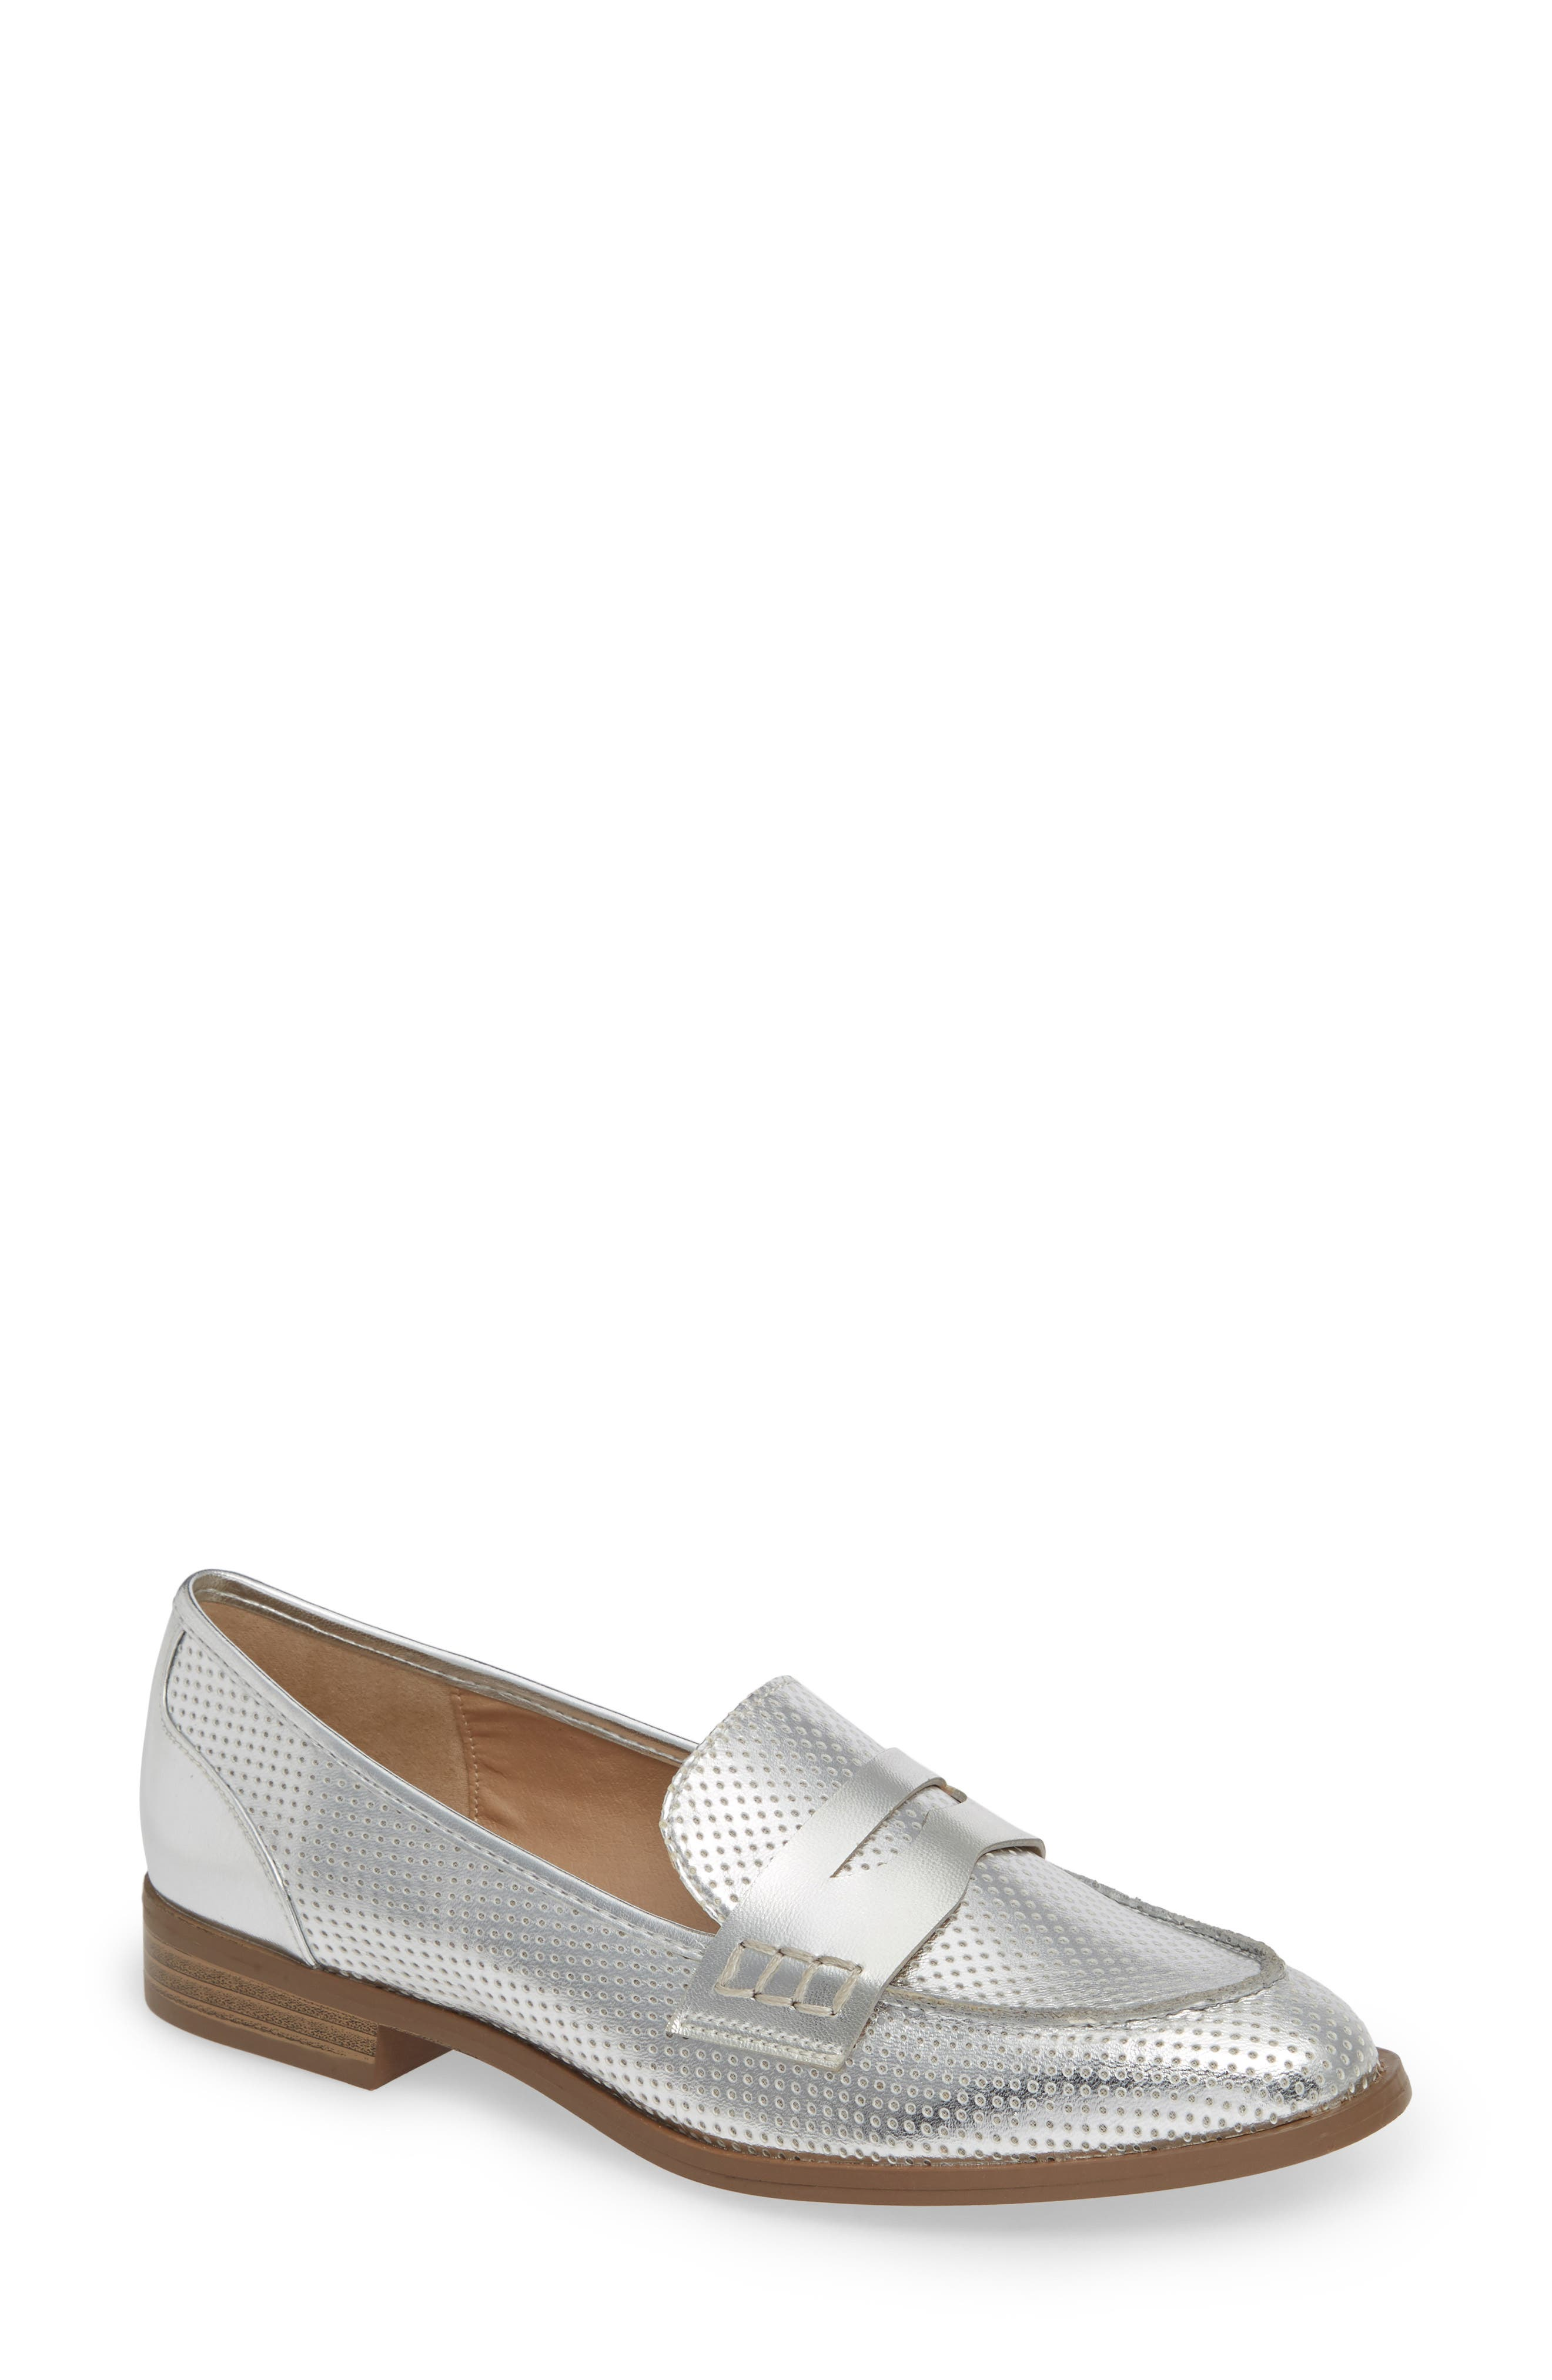 Lewis Loafer,                             Main thumbnail 1, color,                             SILVER